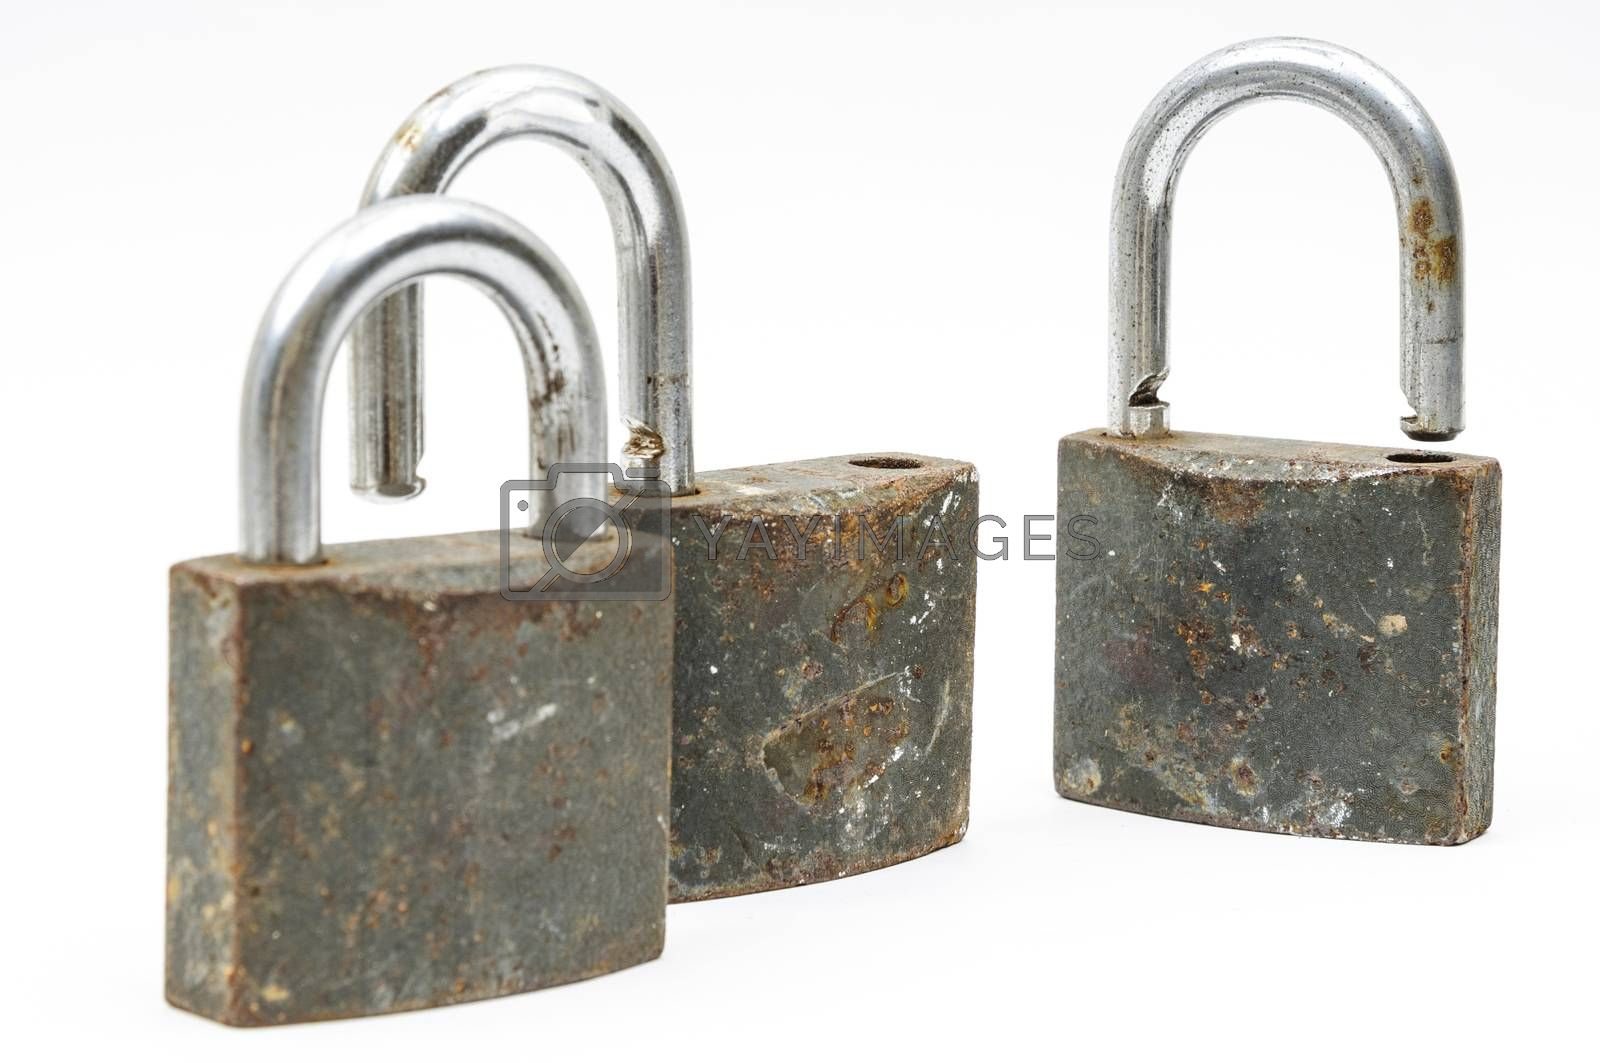 Royalty free image of rusty padlock by emirkoo